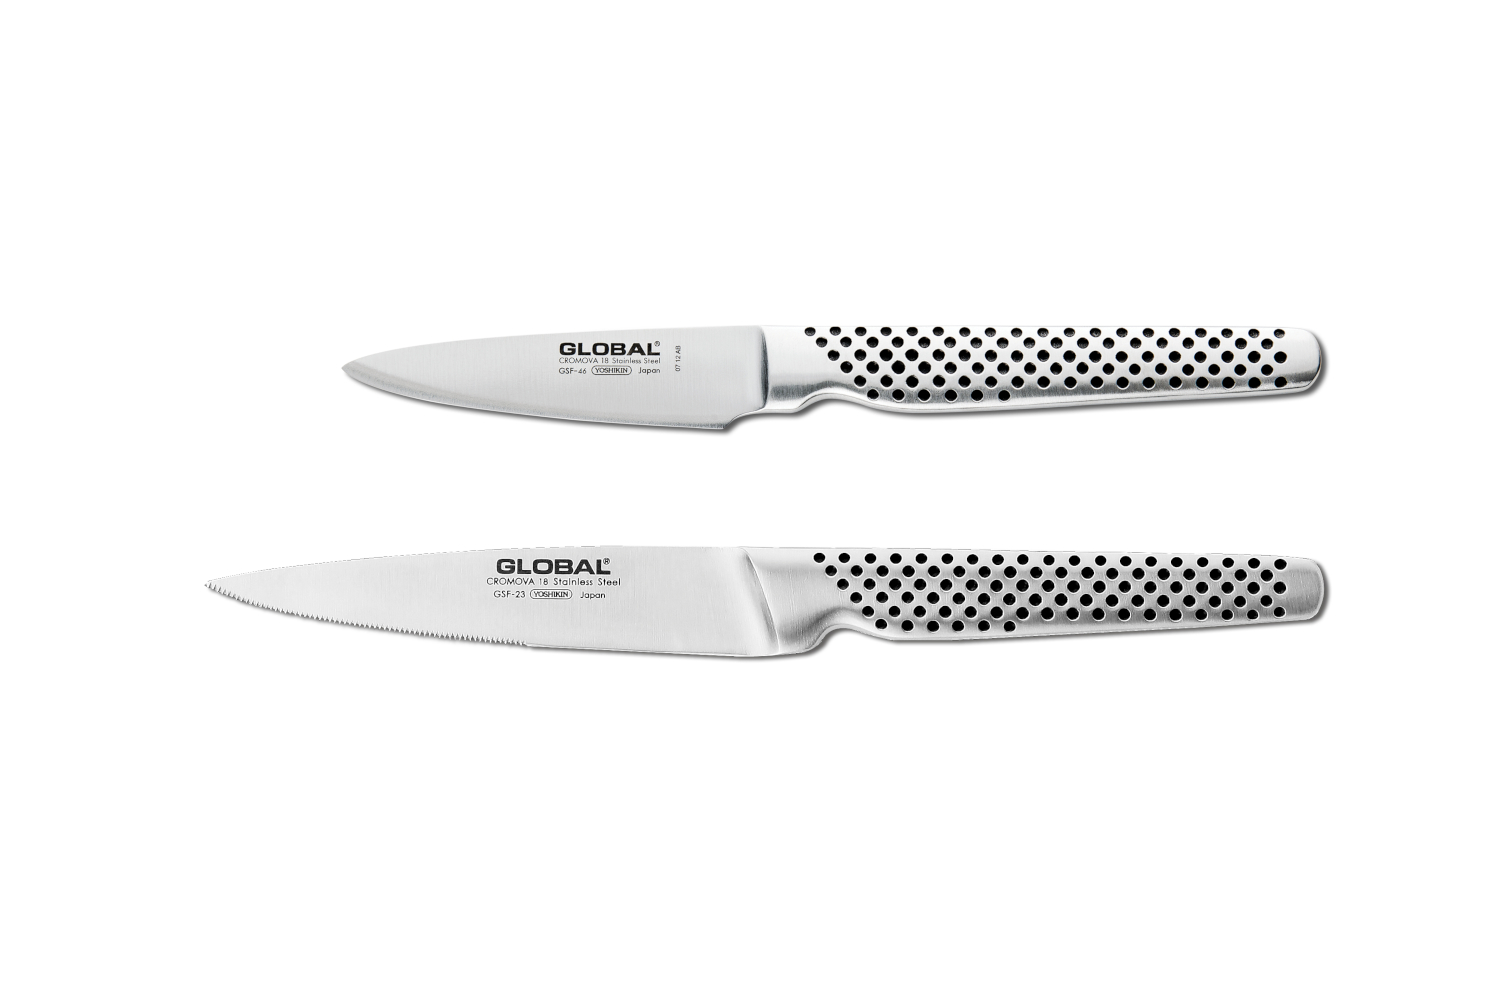 Global 2 Piece Knife Set